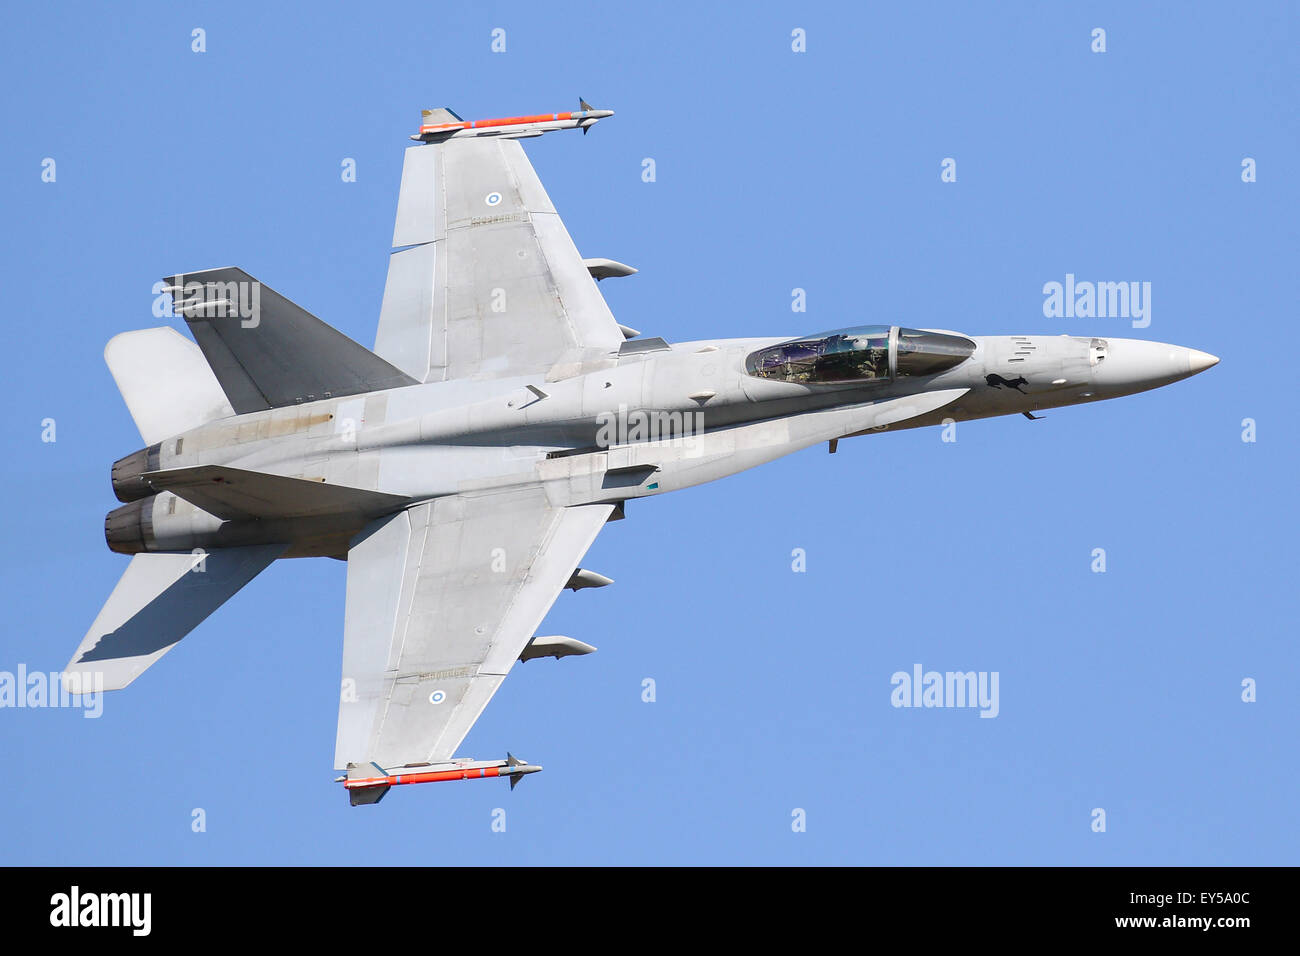 hight resolution of an f18 hornet at the royal international air tattoo stock image